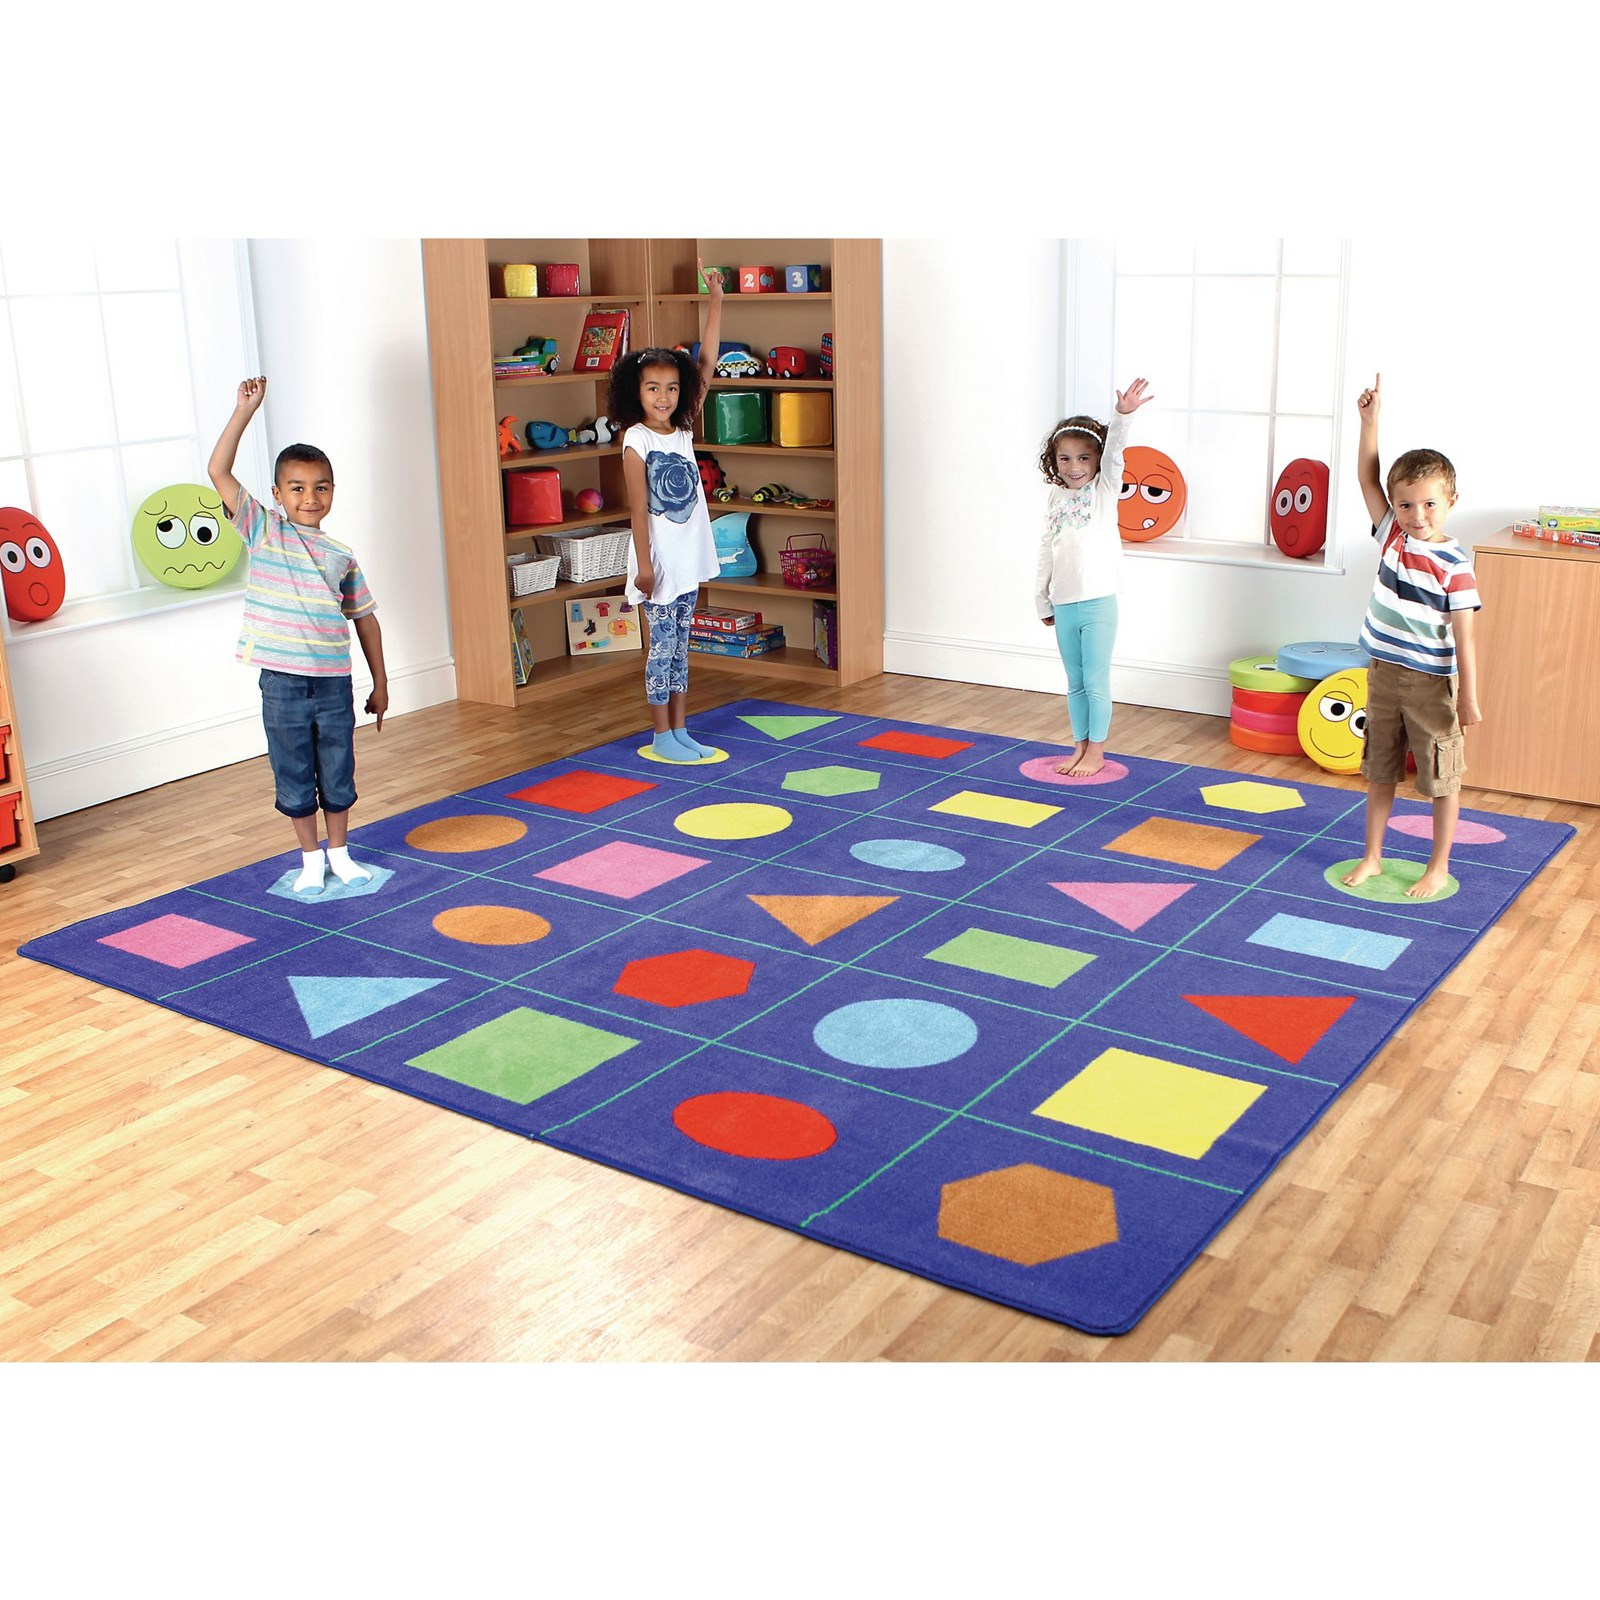 play world squares view rug l my classroom roselawnlutheran rugs abc kids larger area wayfair reviews educational for